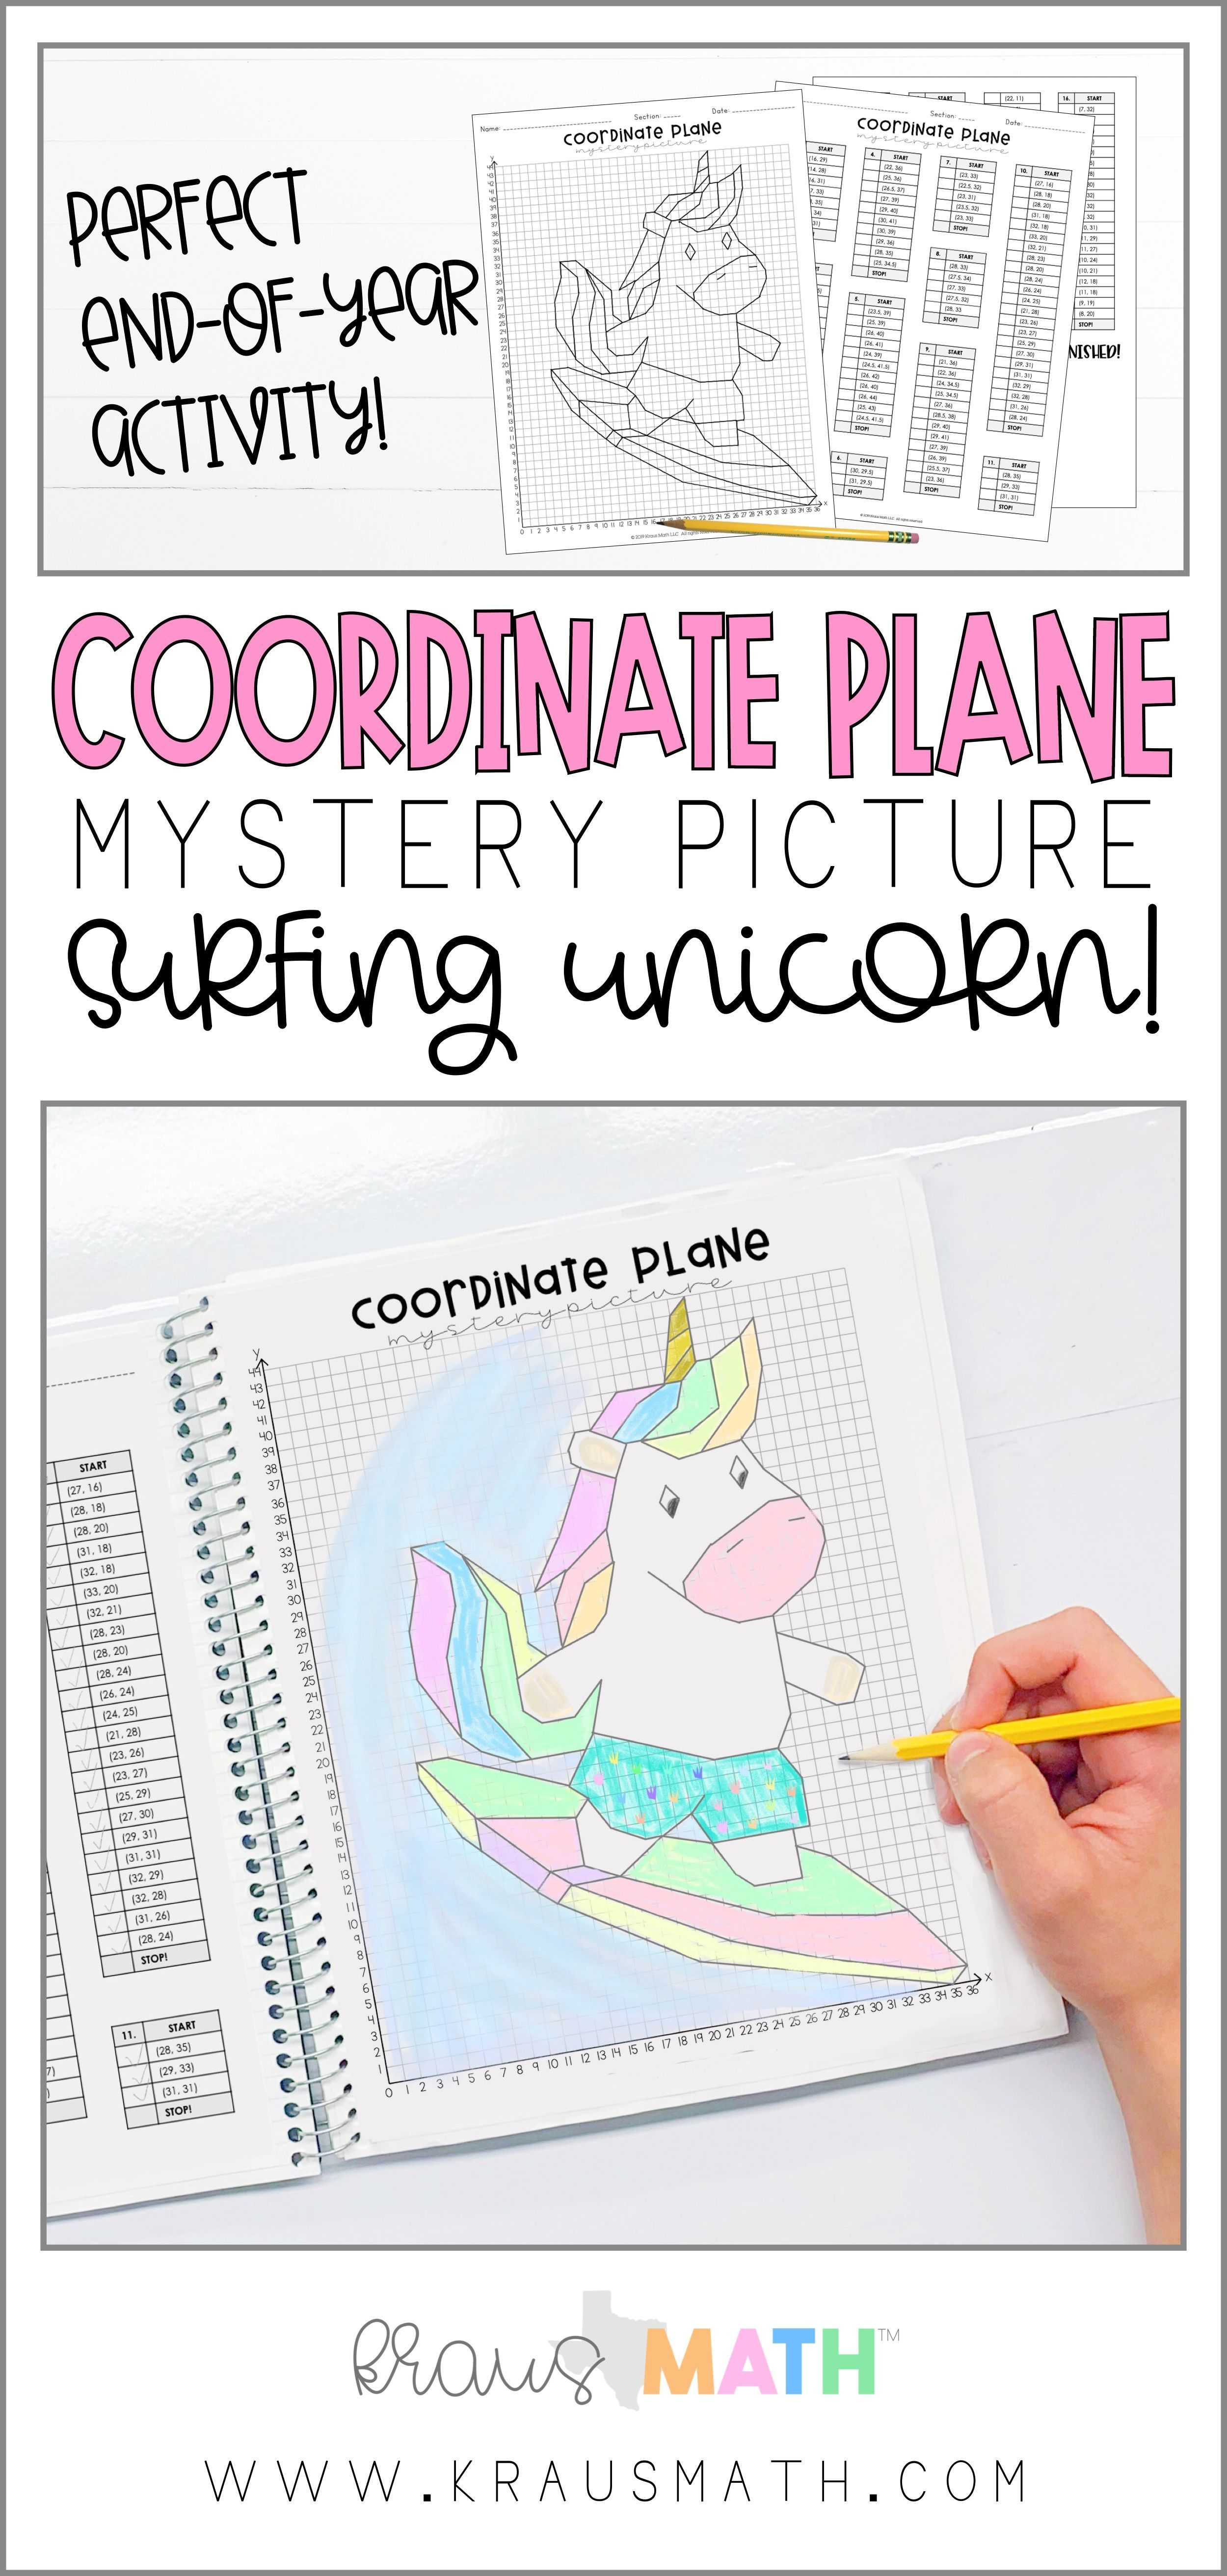 Coordinate Planes Mystery Picture 1st Quadrant Mystery Picture Surfing Unicorn Summer Theme This Is A Great Activ Fun Math Graphing Activities Activities [ 5250 x 2500 Pixel ]